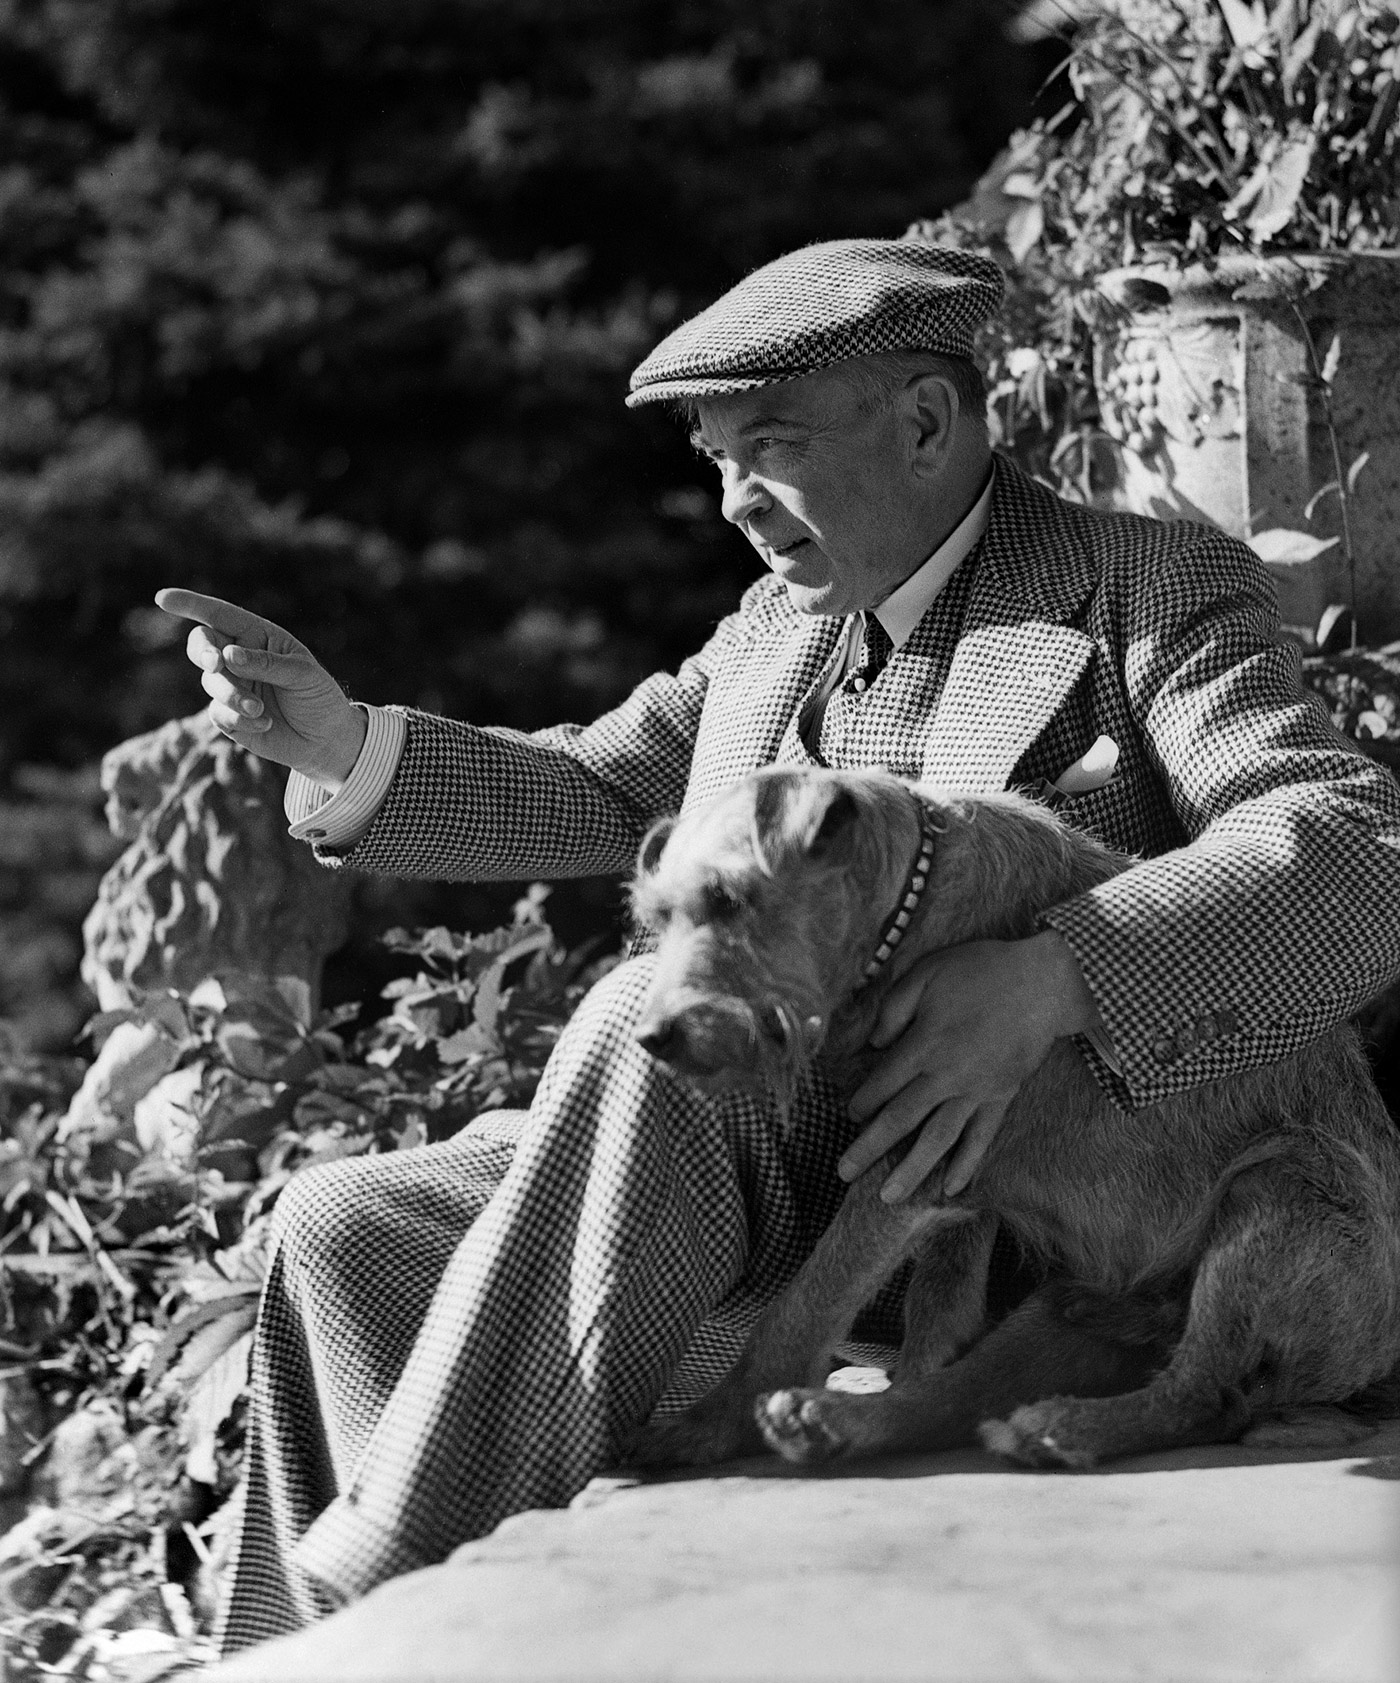 William Lyon Mackenzie King with his dog, Pat I, at Moorside Cottage.  August 21, 1940. Creator: Yousuf Karsh.  CC Attribution 2.0